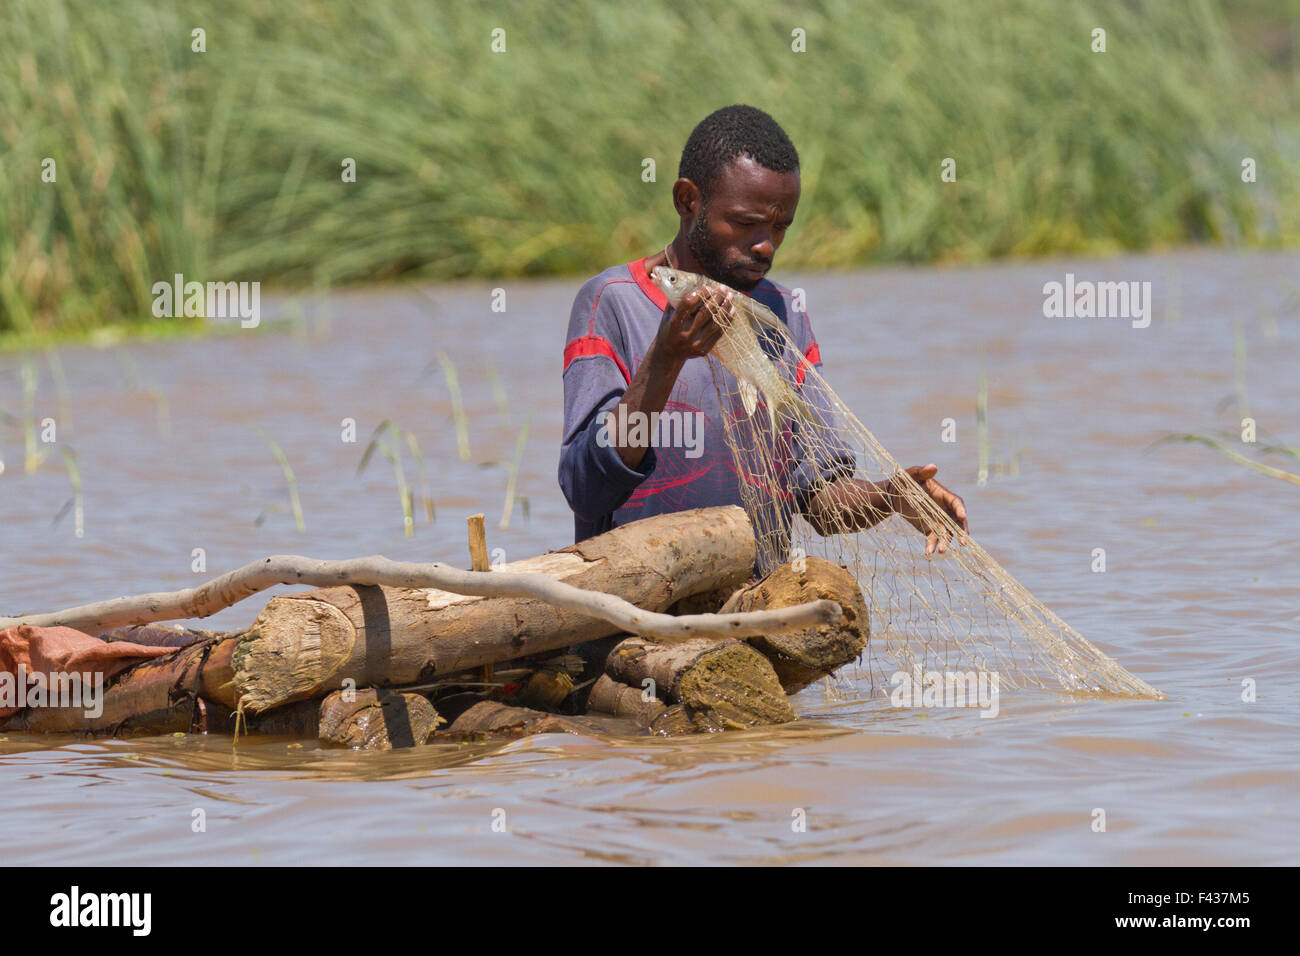 Africa, Ethiopia, man fishing in the river - Stock Image